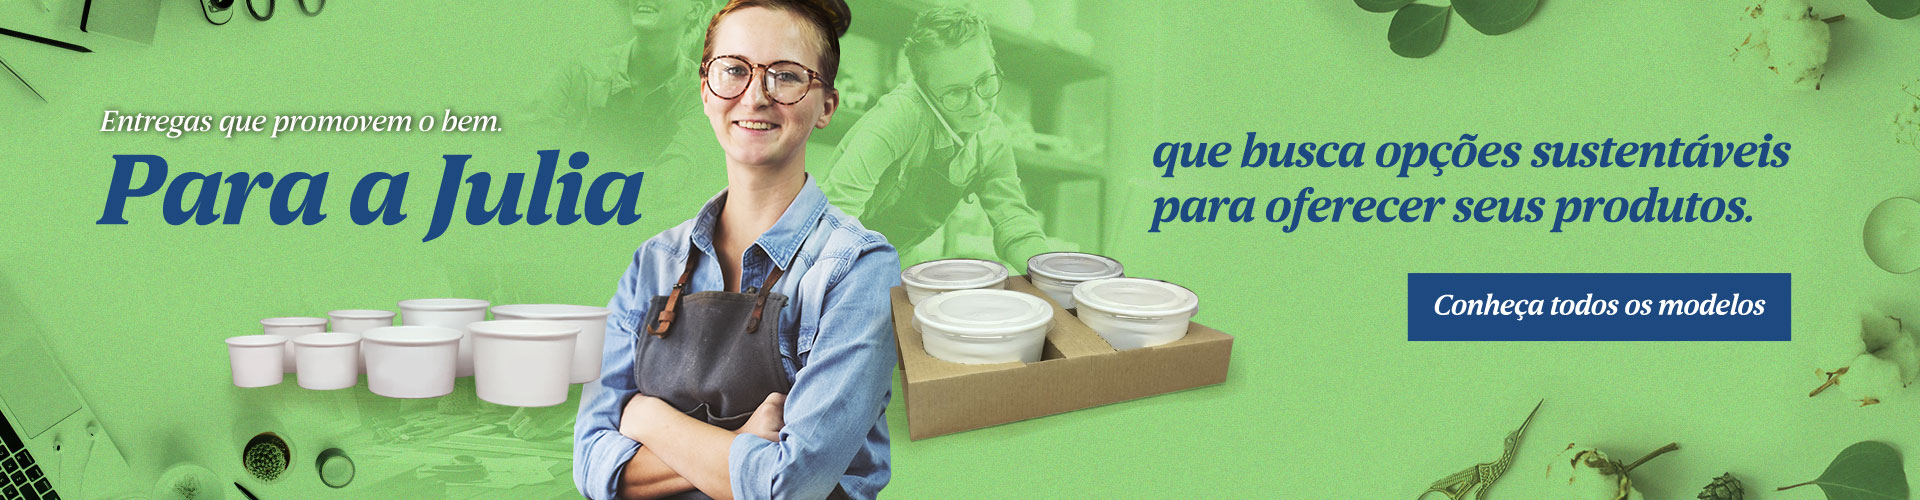 banner-geo-foodservices-03